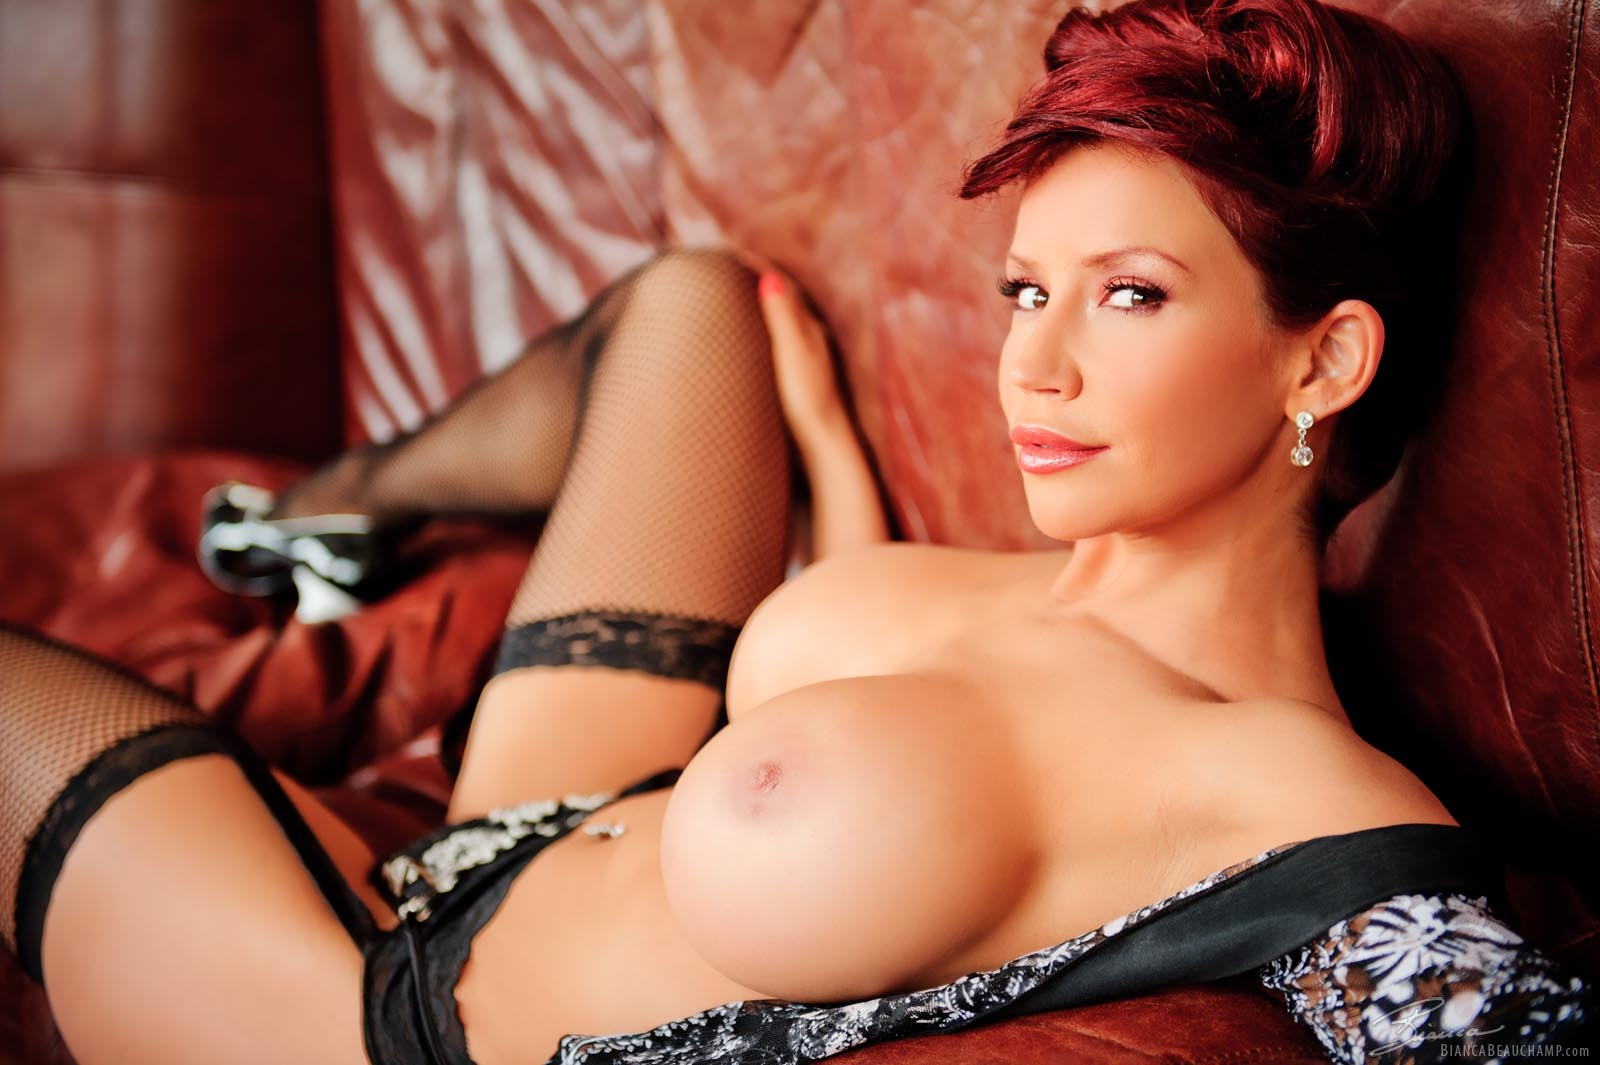 Wallpaper Bianca Beauchamp, Big Tits, Sexy, Lingerie, Boobs, Stockings, Redhead, Hooters, Hot, Sexy, Erotic, Round Ass, Round Boobs, Tight, Beauty -2107